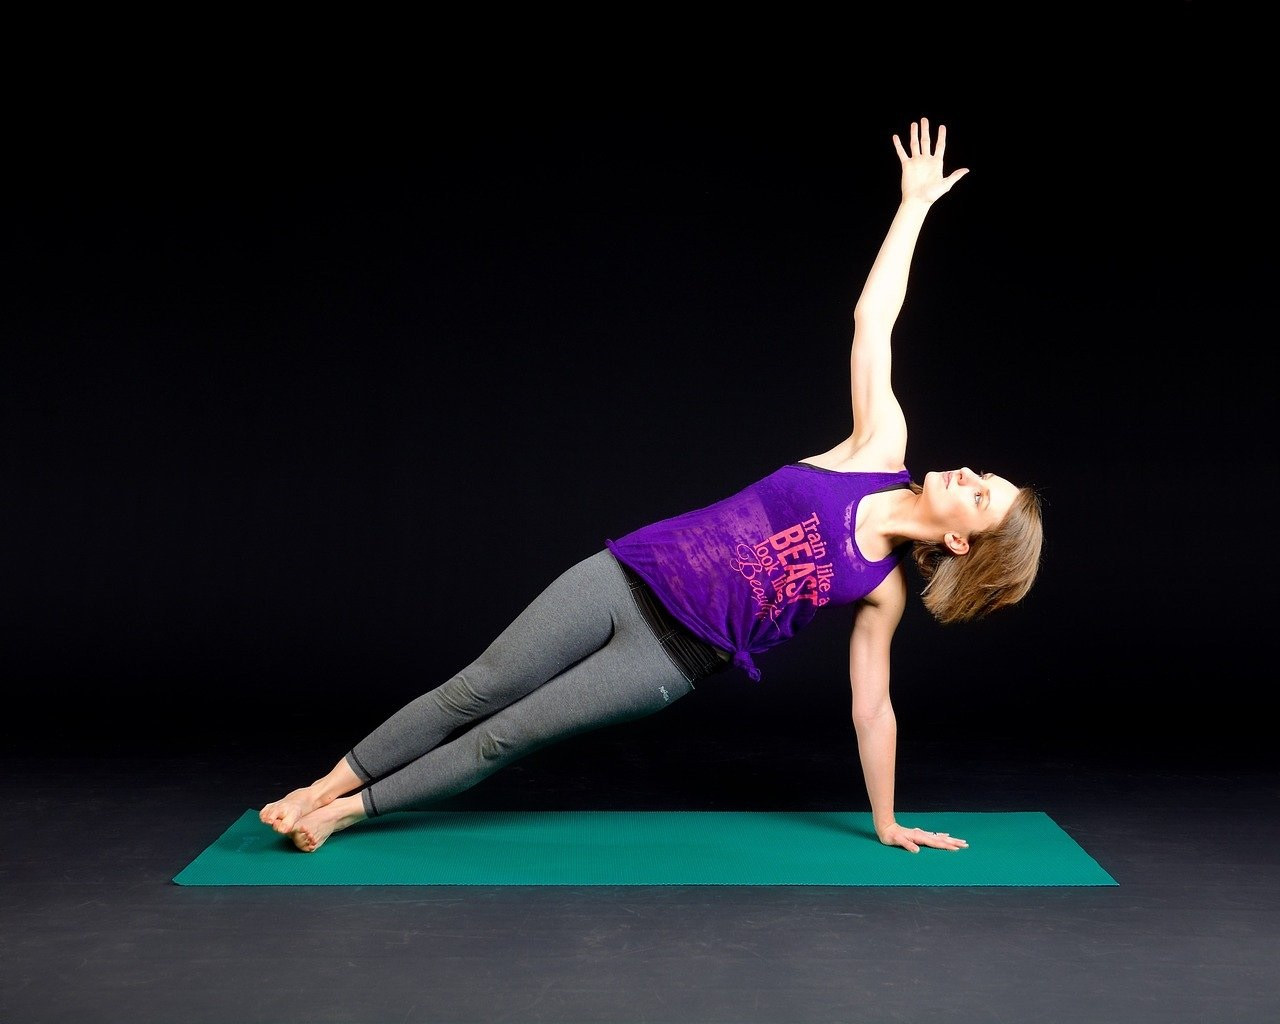 a person performing a plank exercise